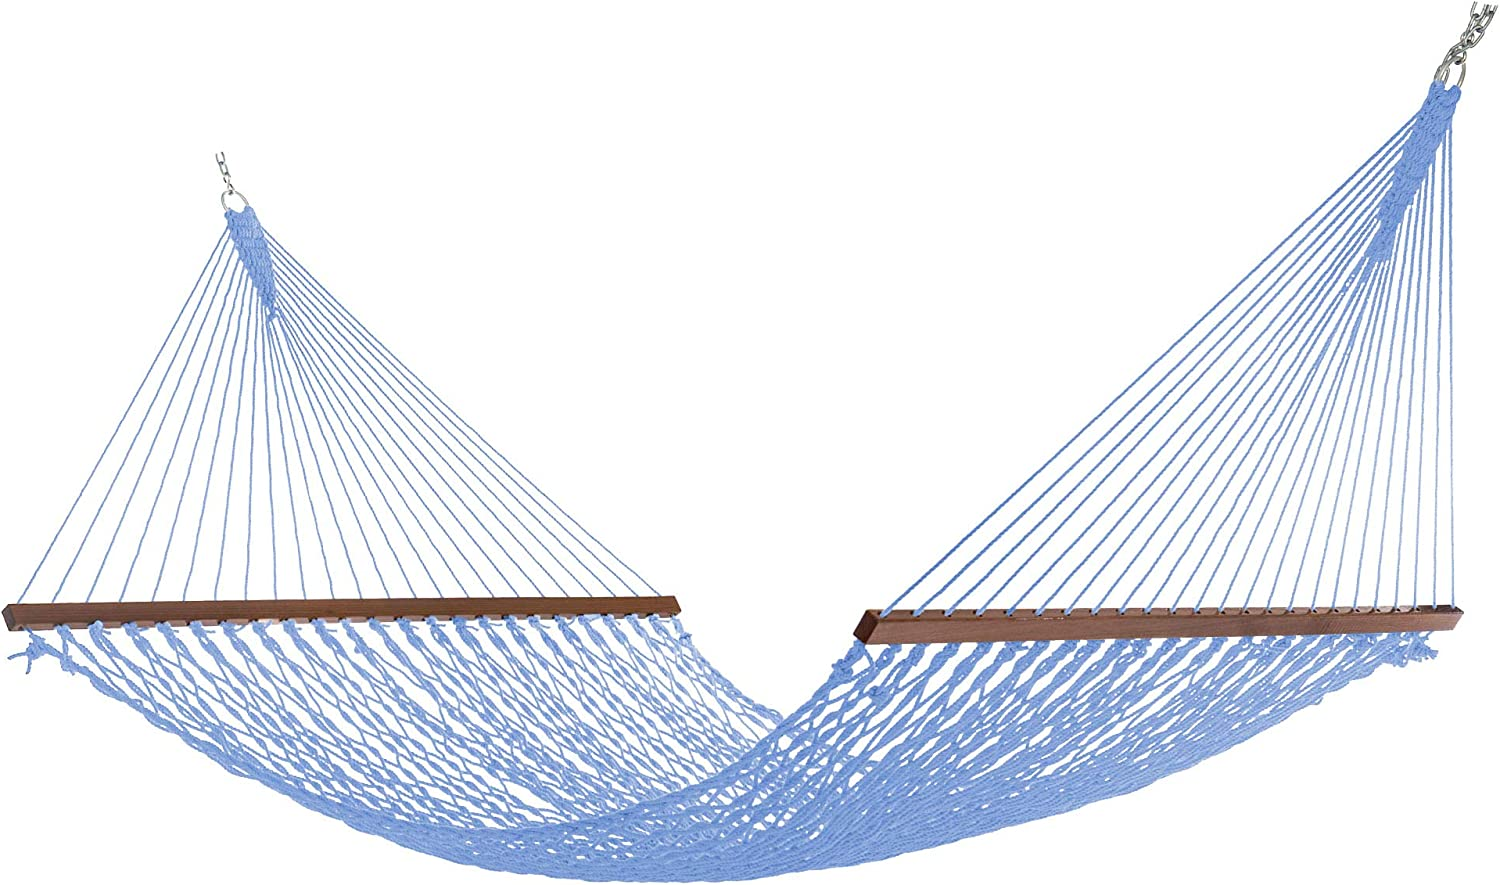 Hatteras HammocksDeluxe DuracordRope Reservation Hammock Ranking TOP13 E Free with